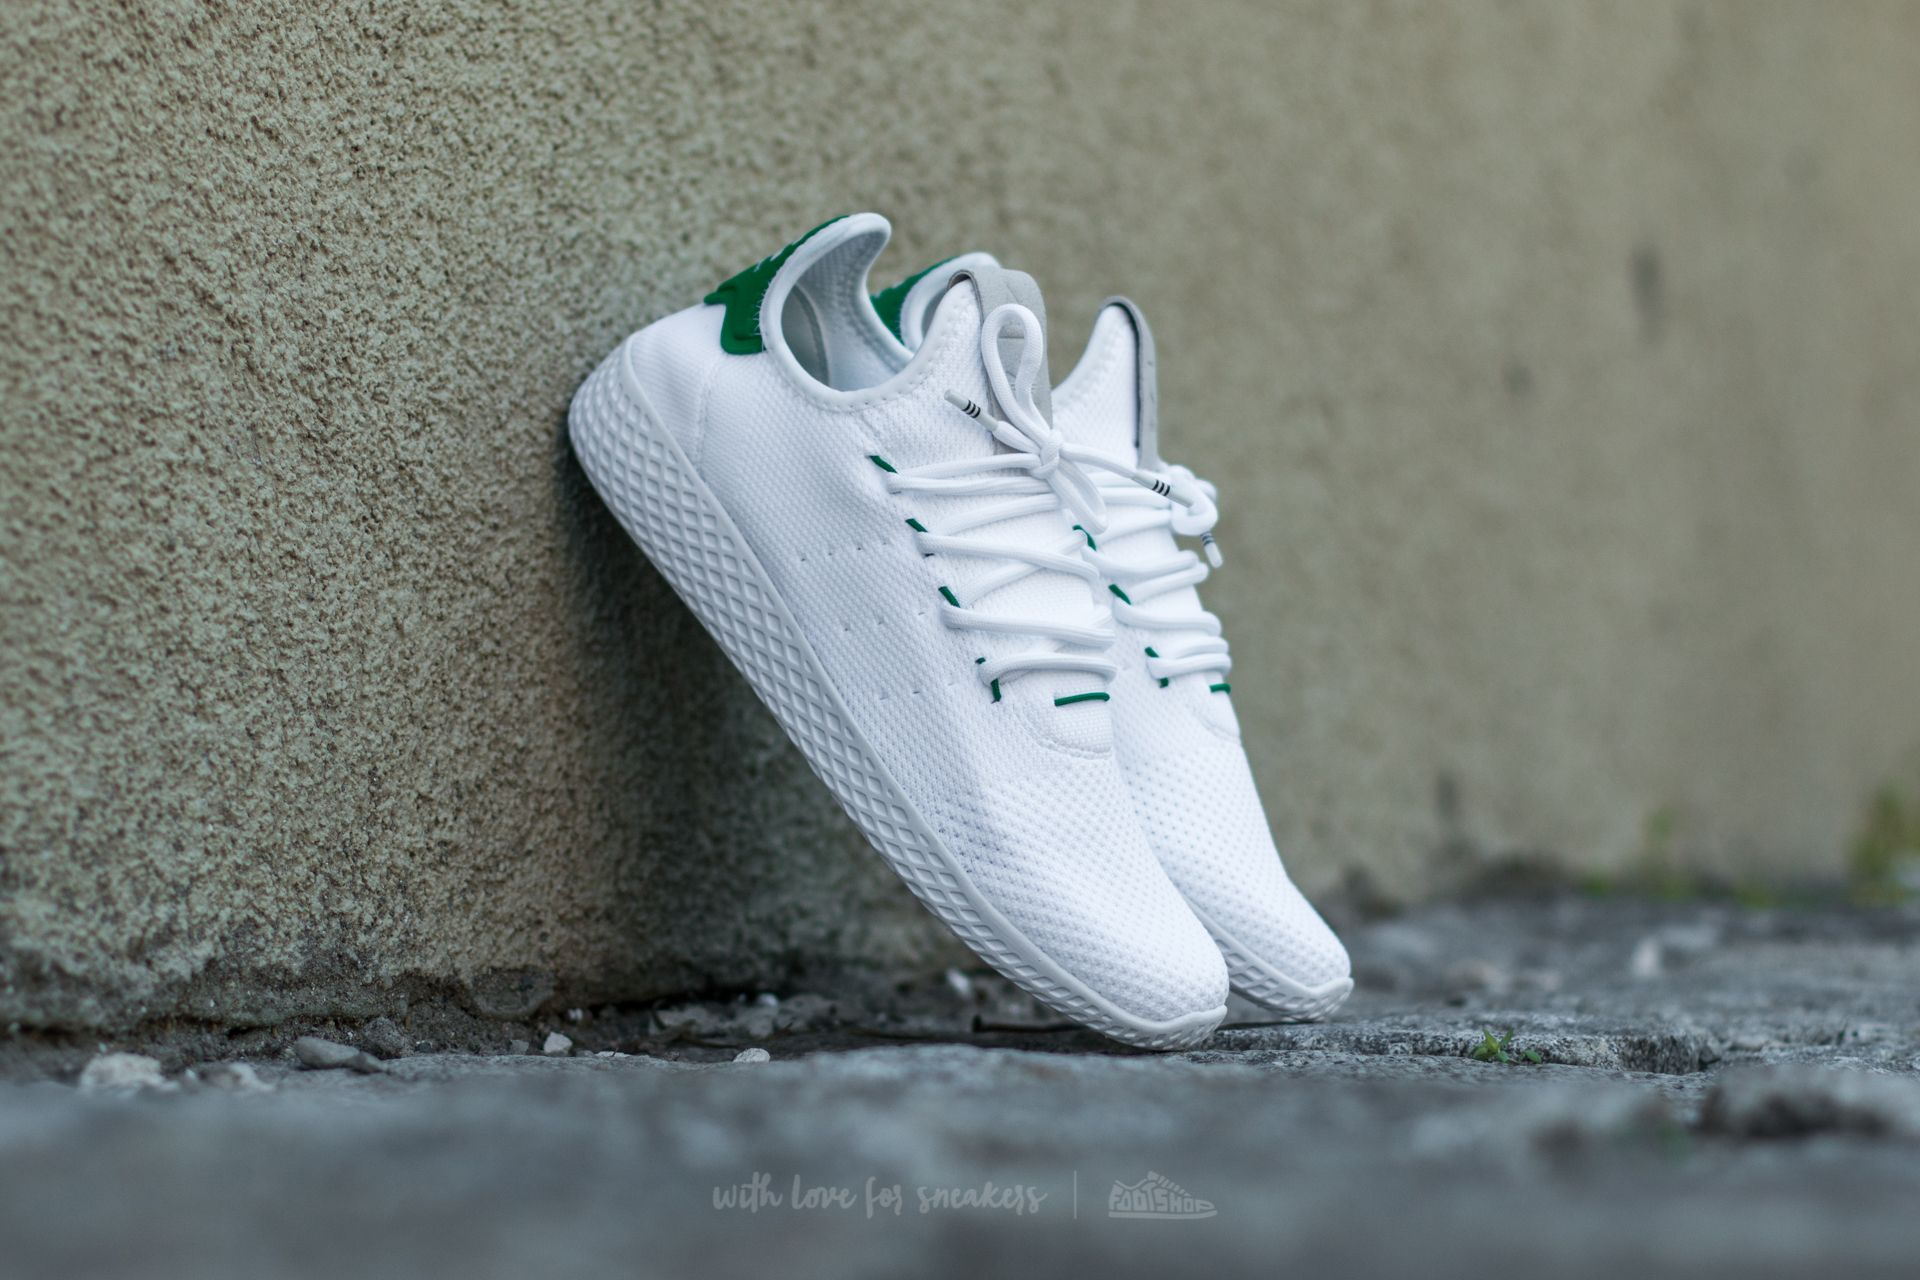 e88fb794236 adidas x Pharrell Williams Tennis HU Ftw White  Ftw White  Green ...